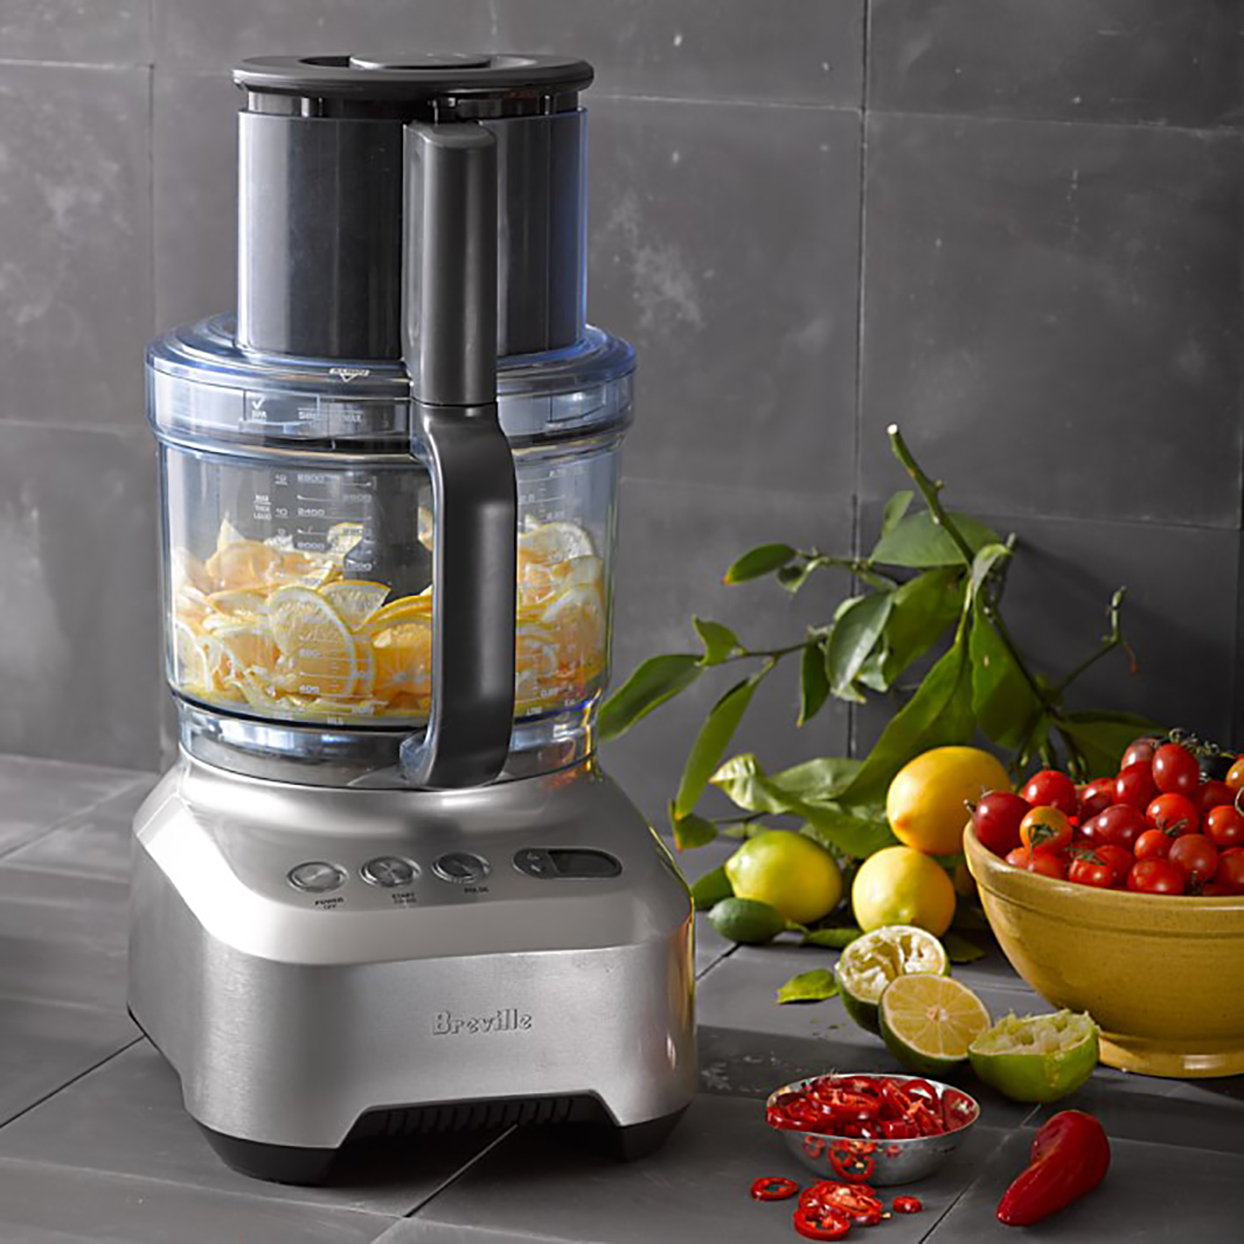 Breville Sous Chef Food Processor, 16-Cup